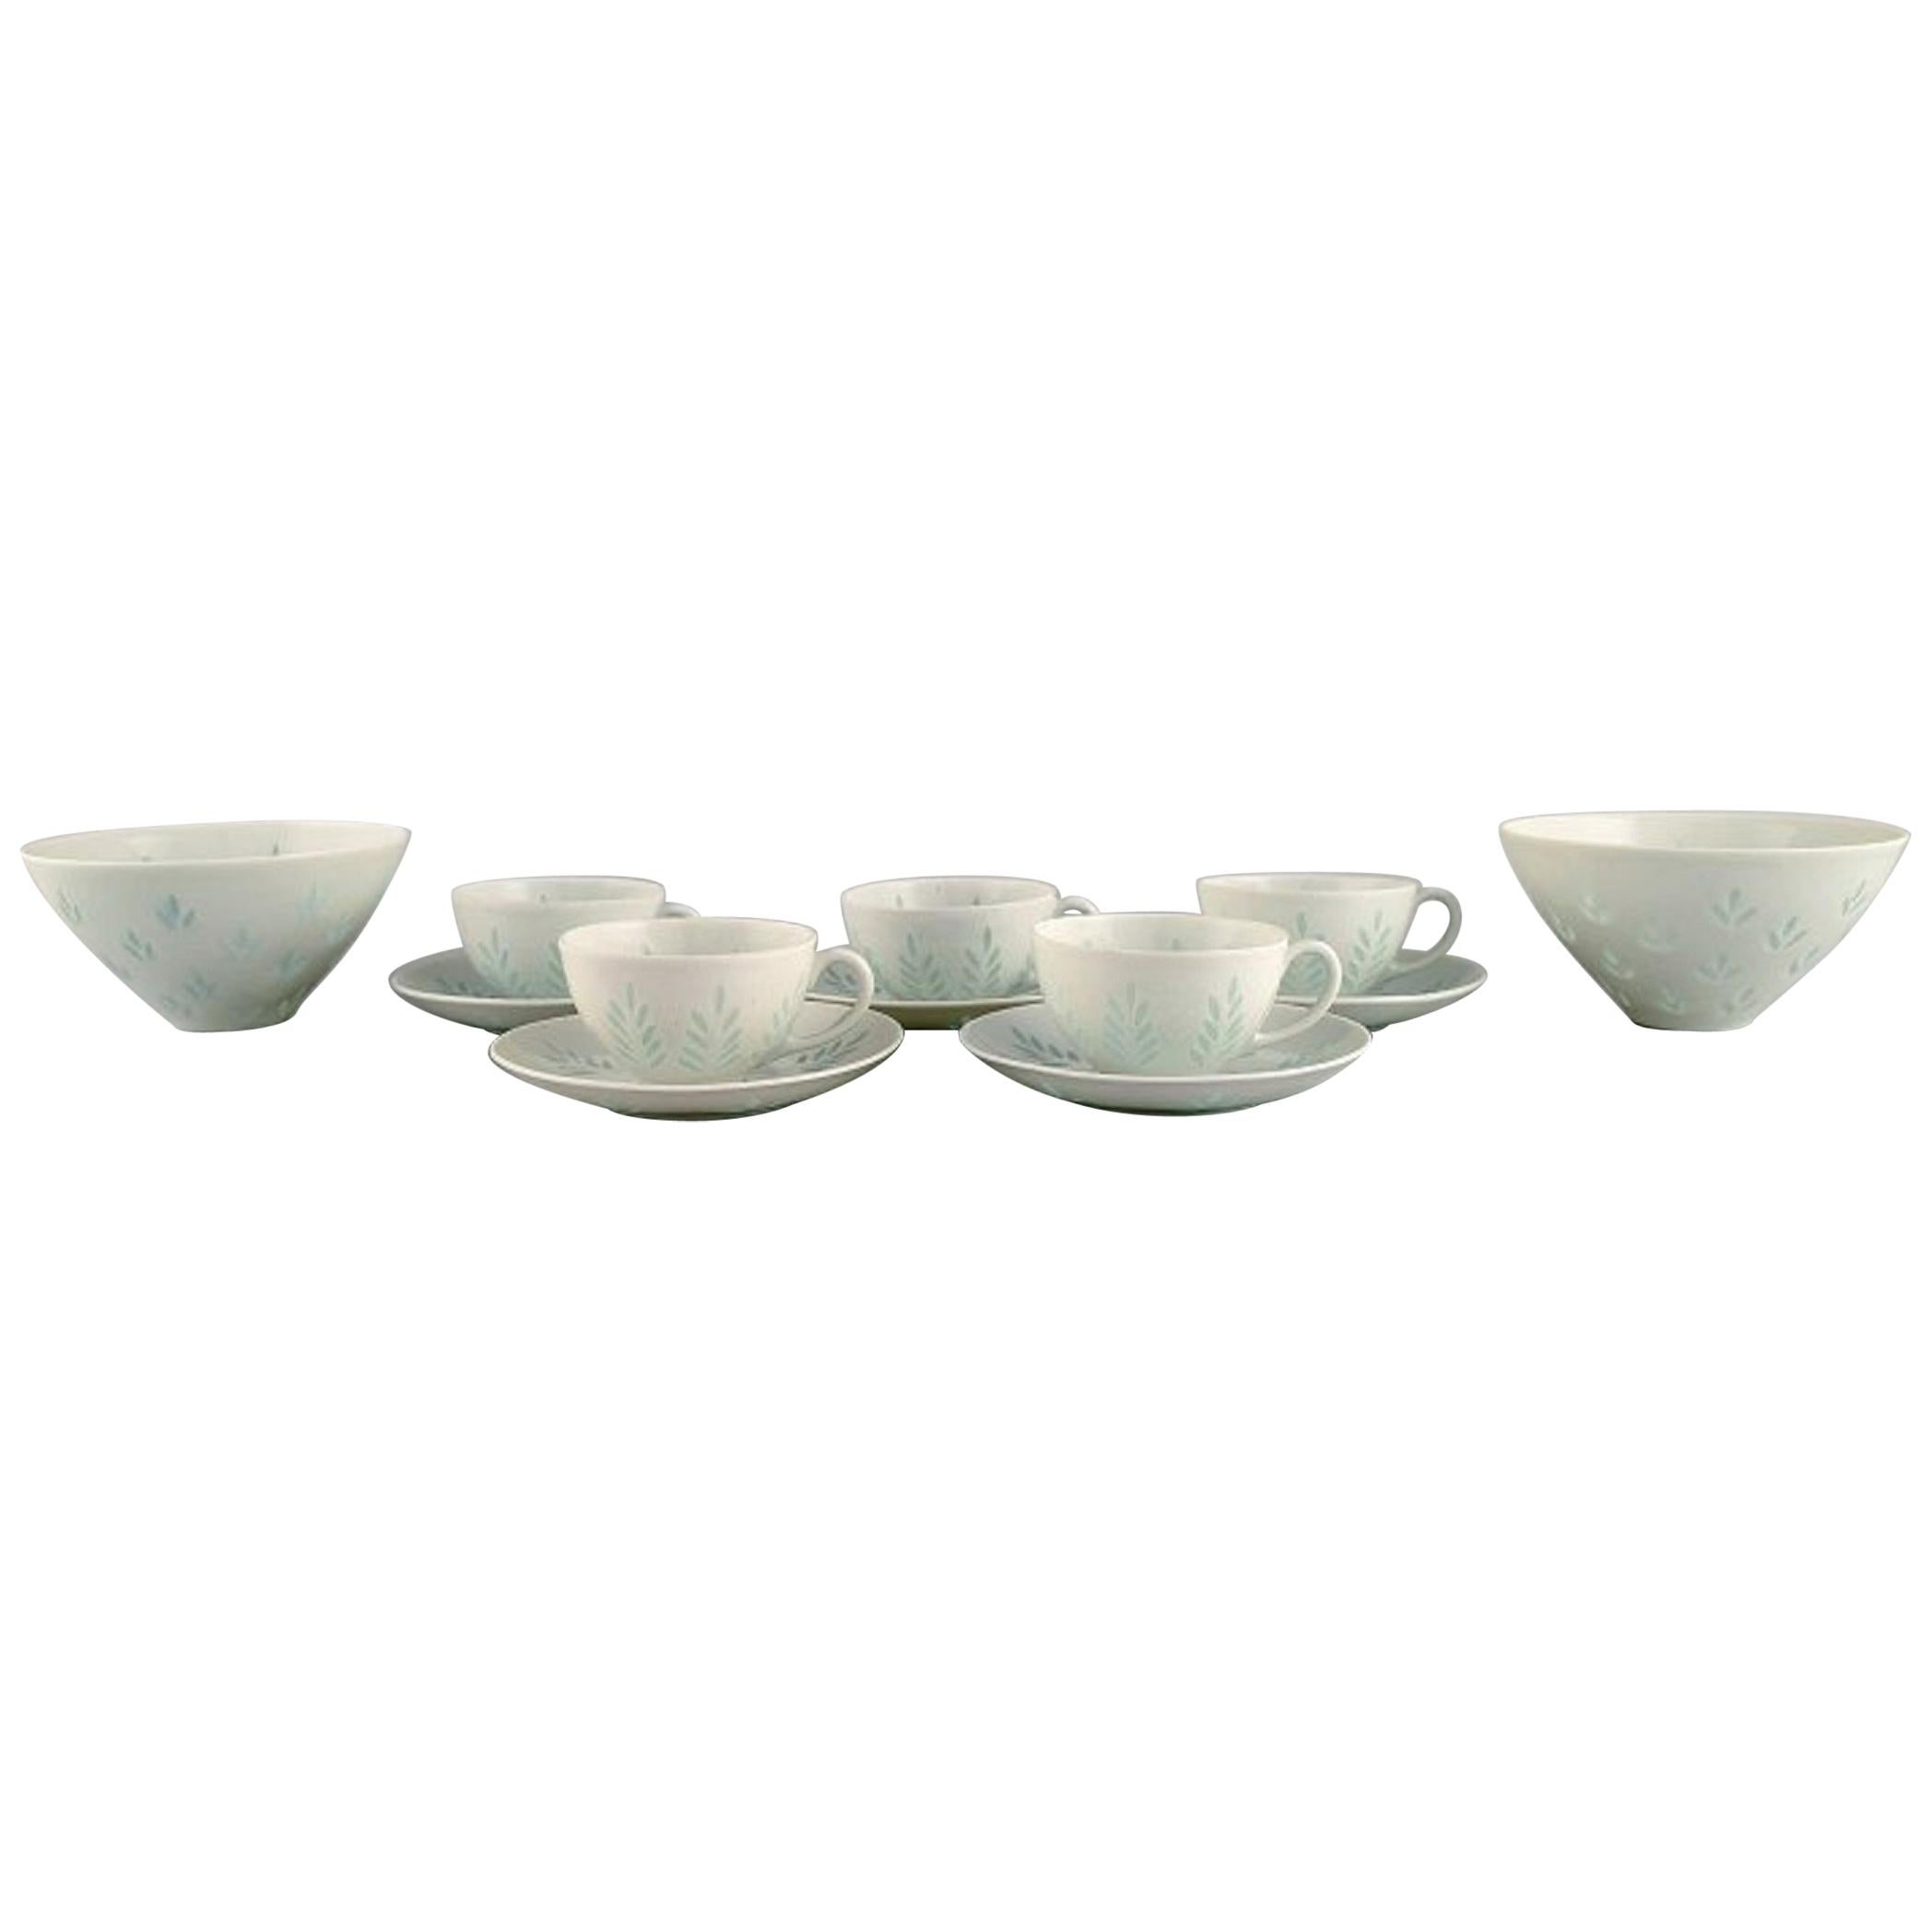 Freidl Holzer Kjellberg for Arabia, Five Coffee Cups with Saucers and Two Bowls